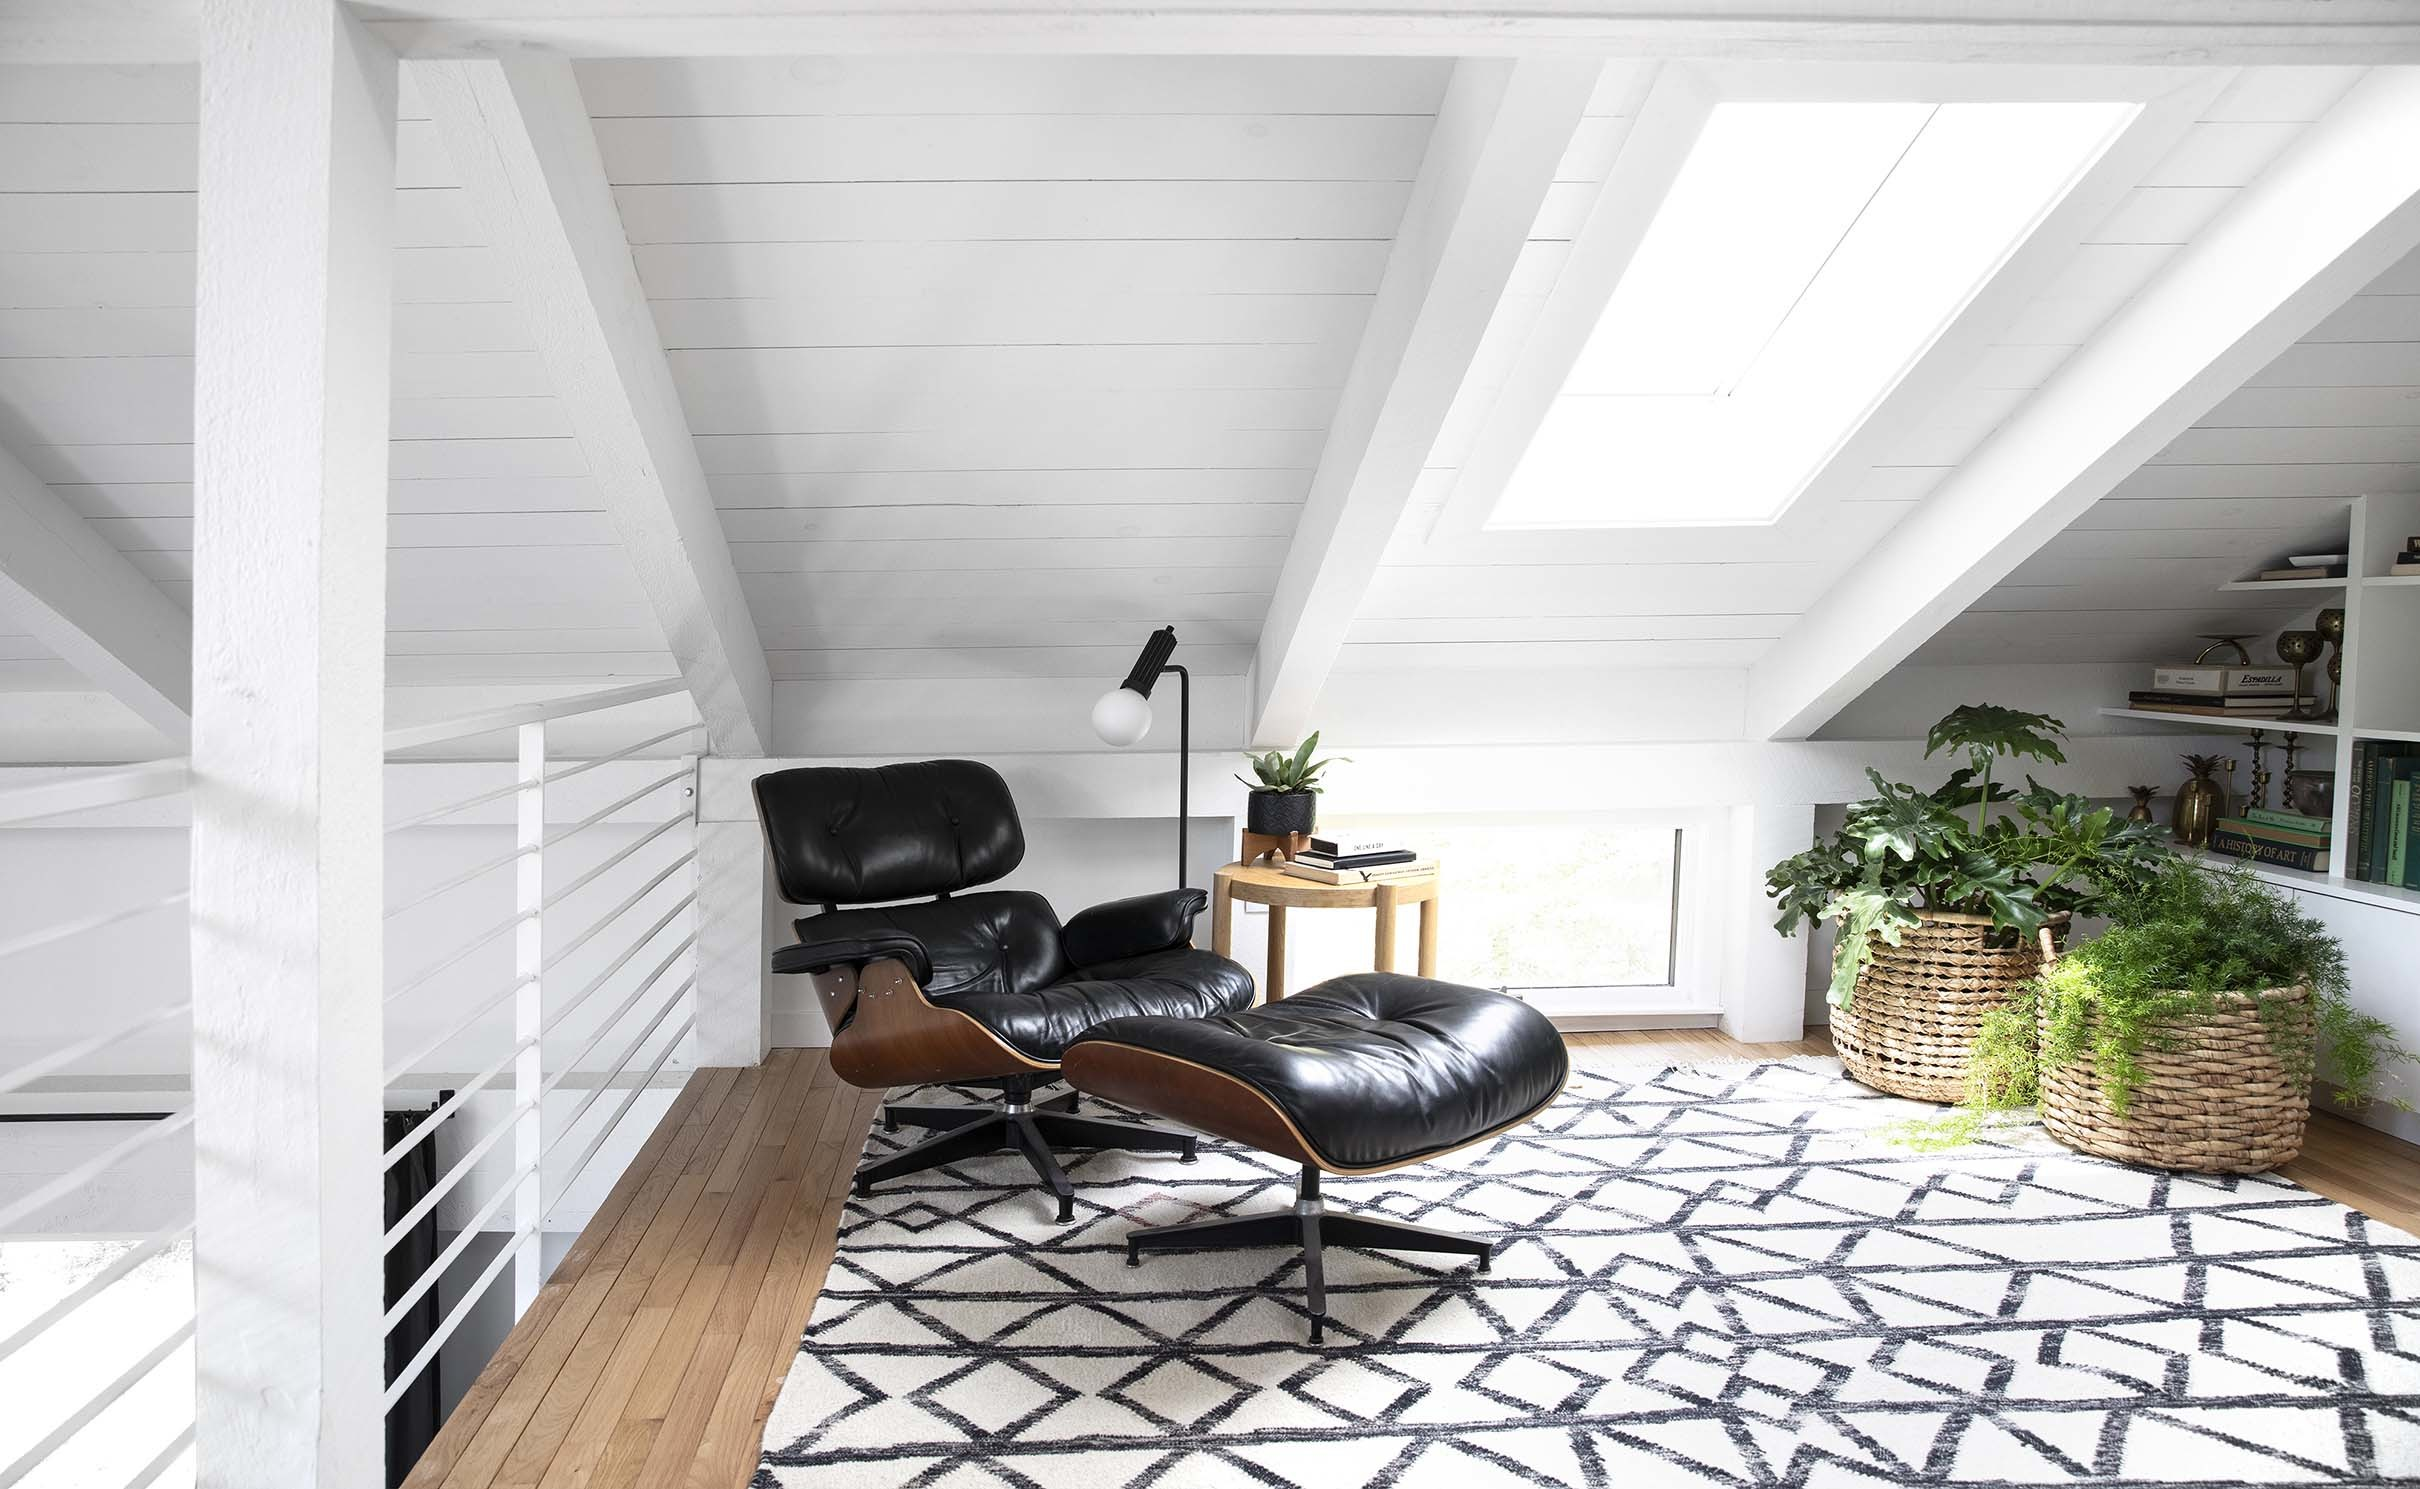 Black Eames chair under a skylight in a white wood clad room with built-in bookshelves and a geometric print rug